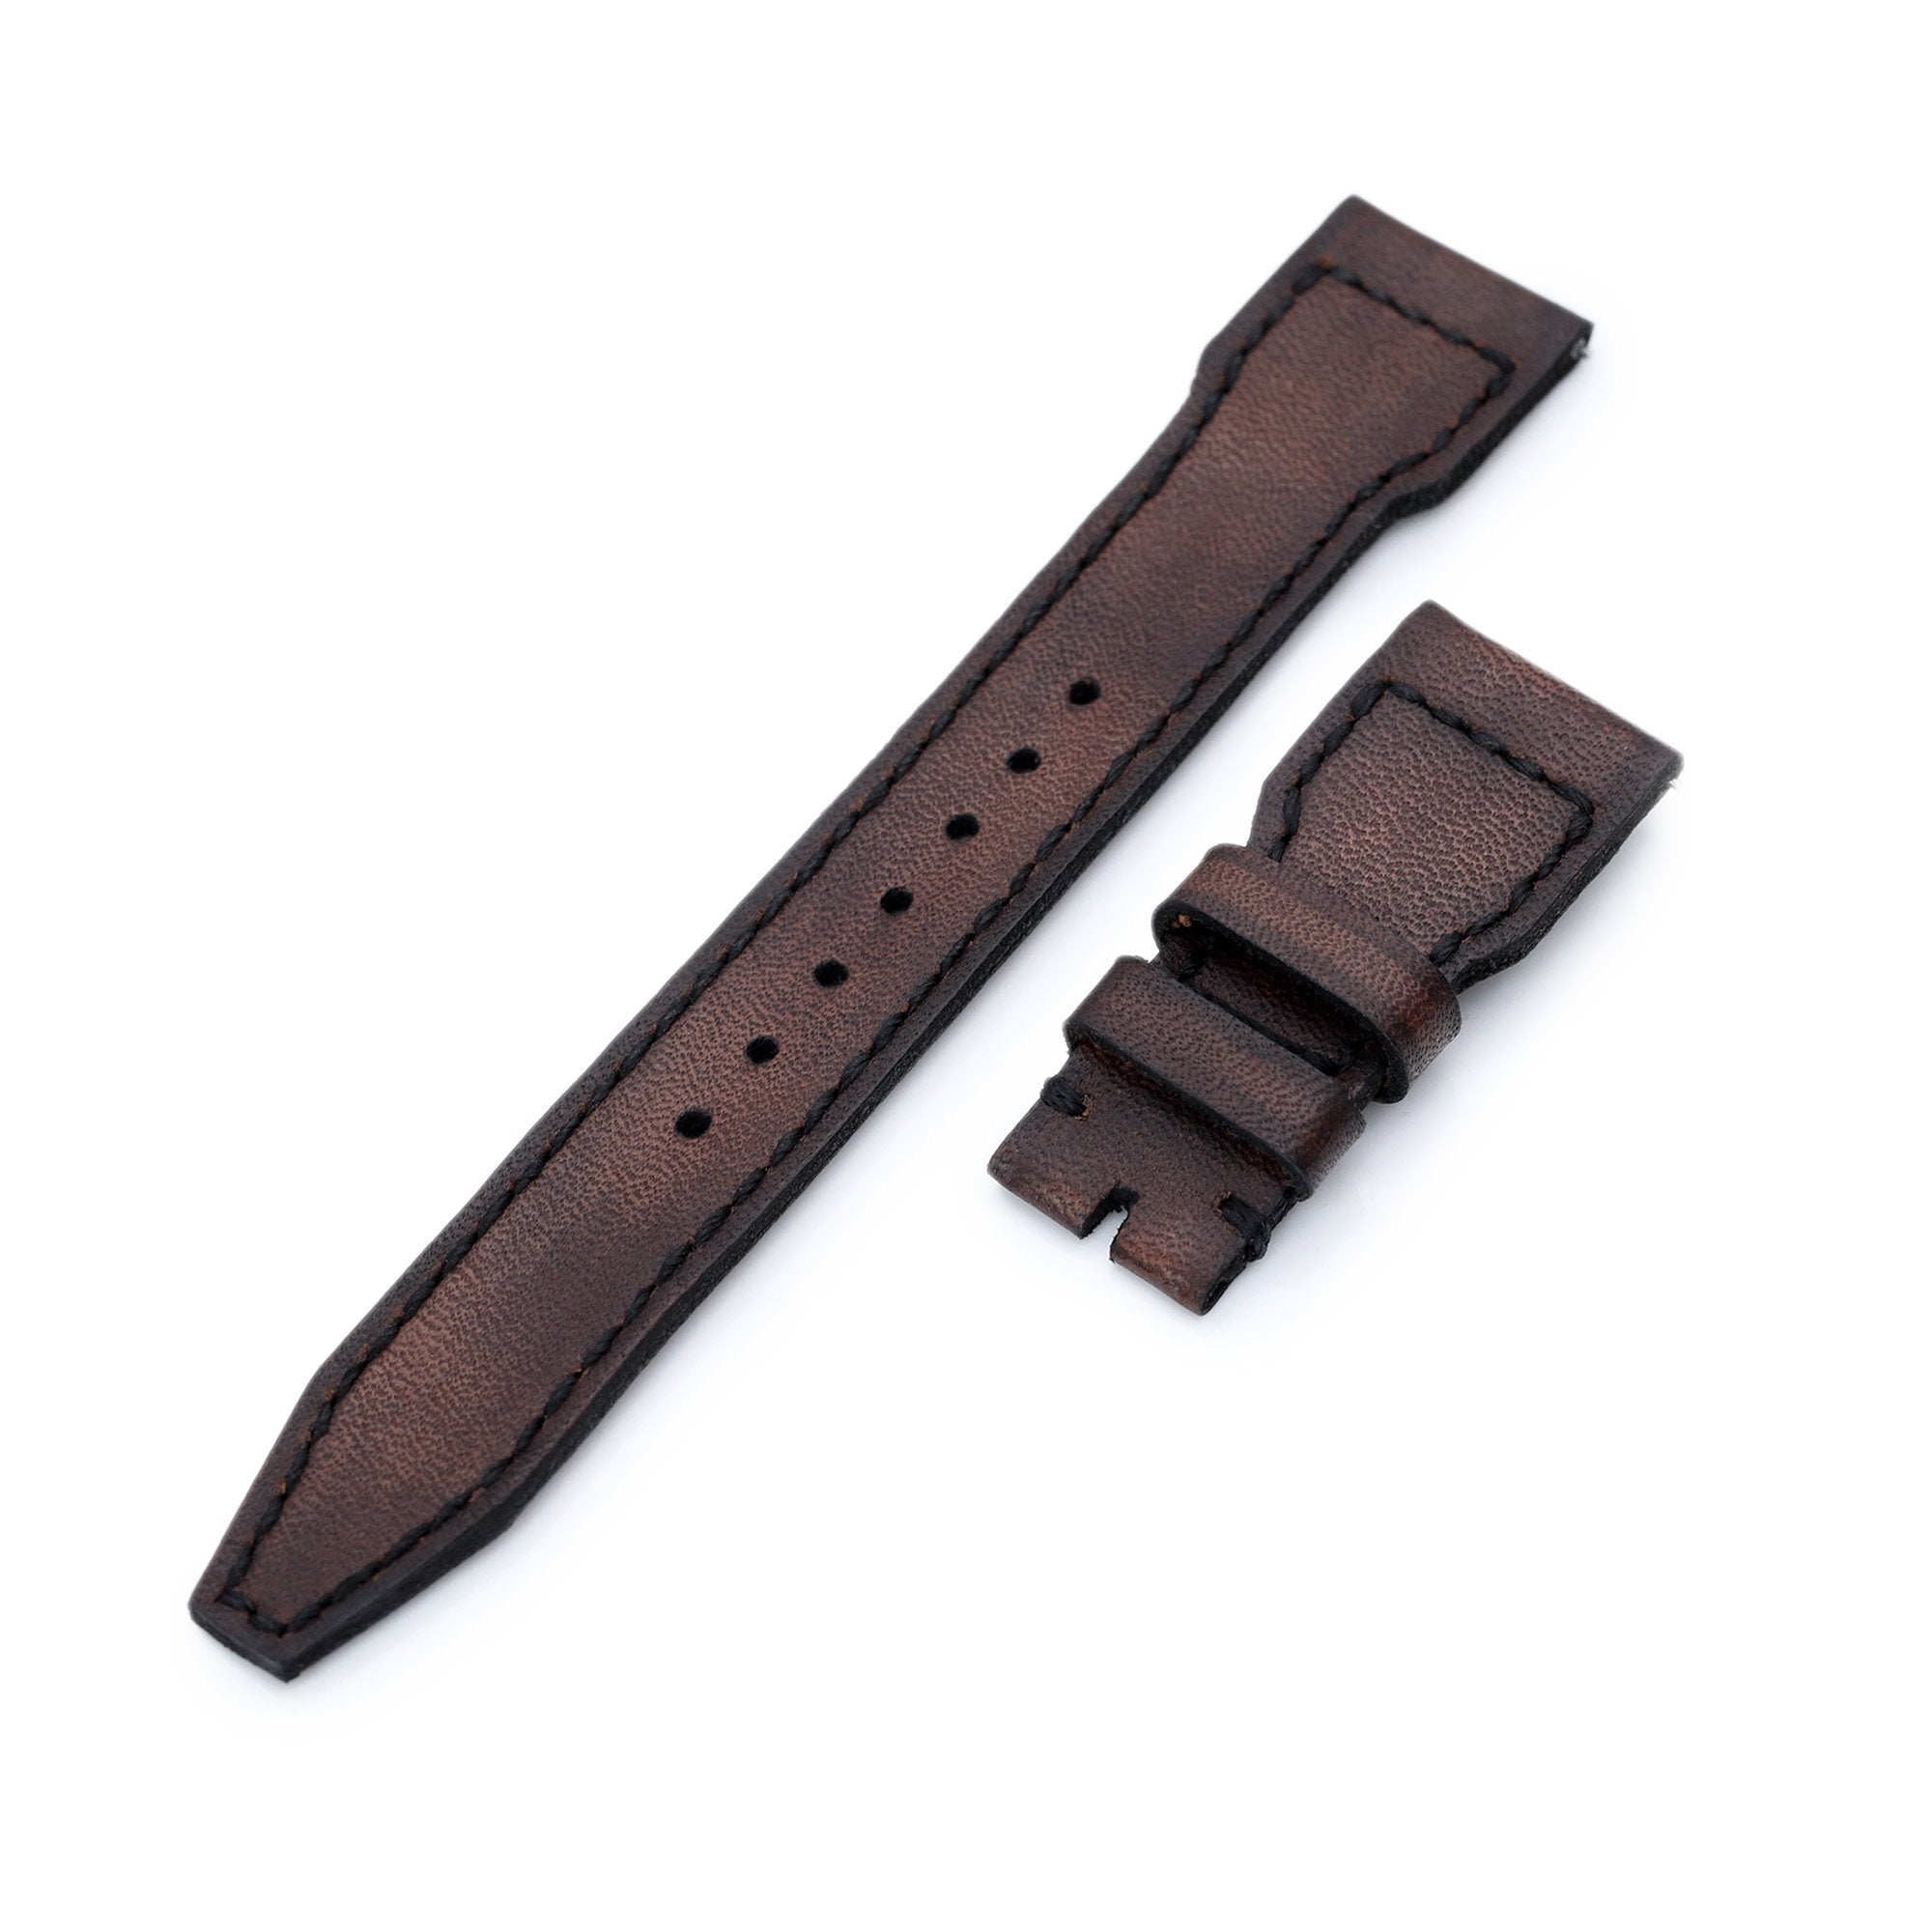 22mm Gunny X MT Dark Brown Handmade for IWC Big Pilot Quick Release Leather Watch Strap Strapcode Watch Bands